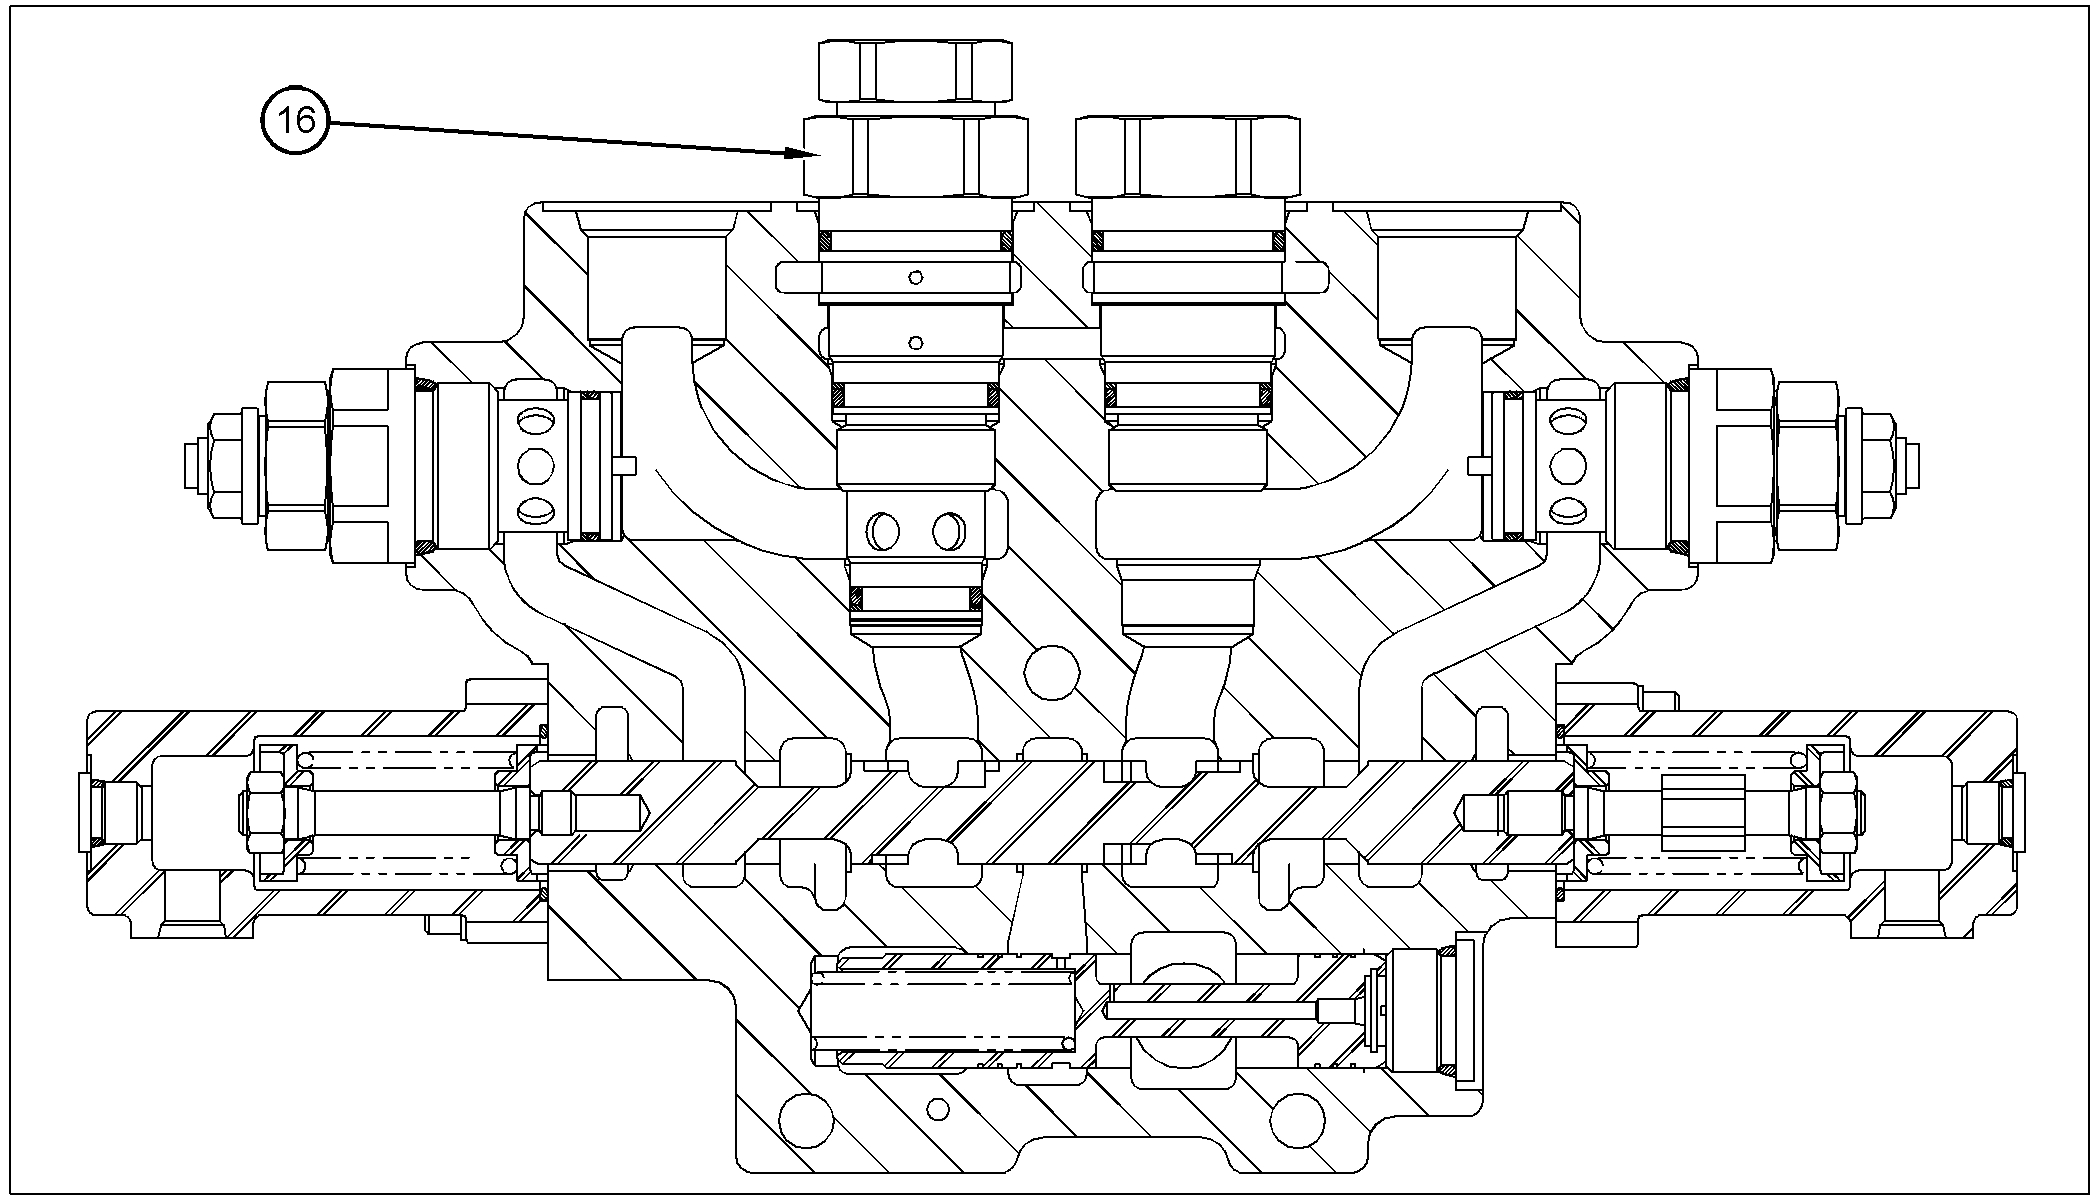 ... Ford 4500 Tractor Wiring Diagram further John Deere D100 Wiring Diagram  in addition Ford 6610 Parts ...